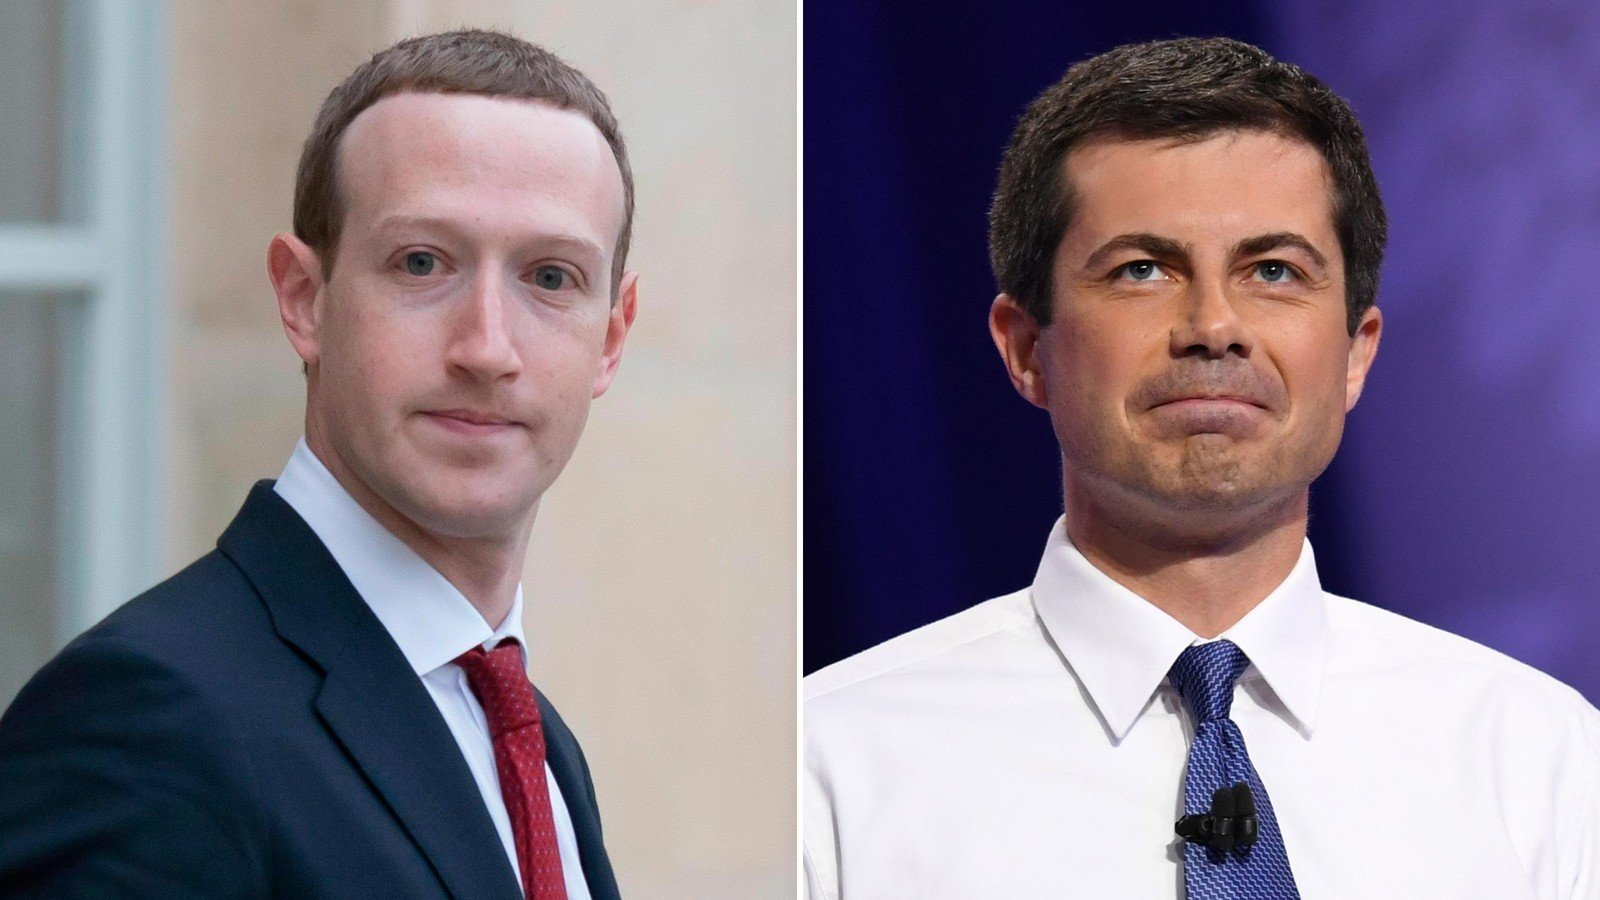 Facebook CEO Mark Zuckerberg and presidential candidate Pete Buttigieg are seen in file photos by the Associated Press and Getty Images.